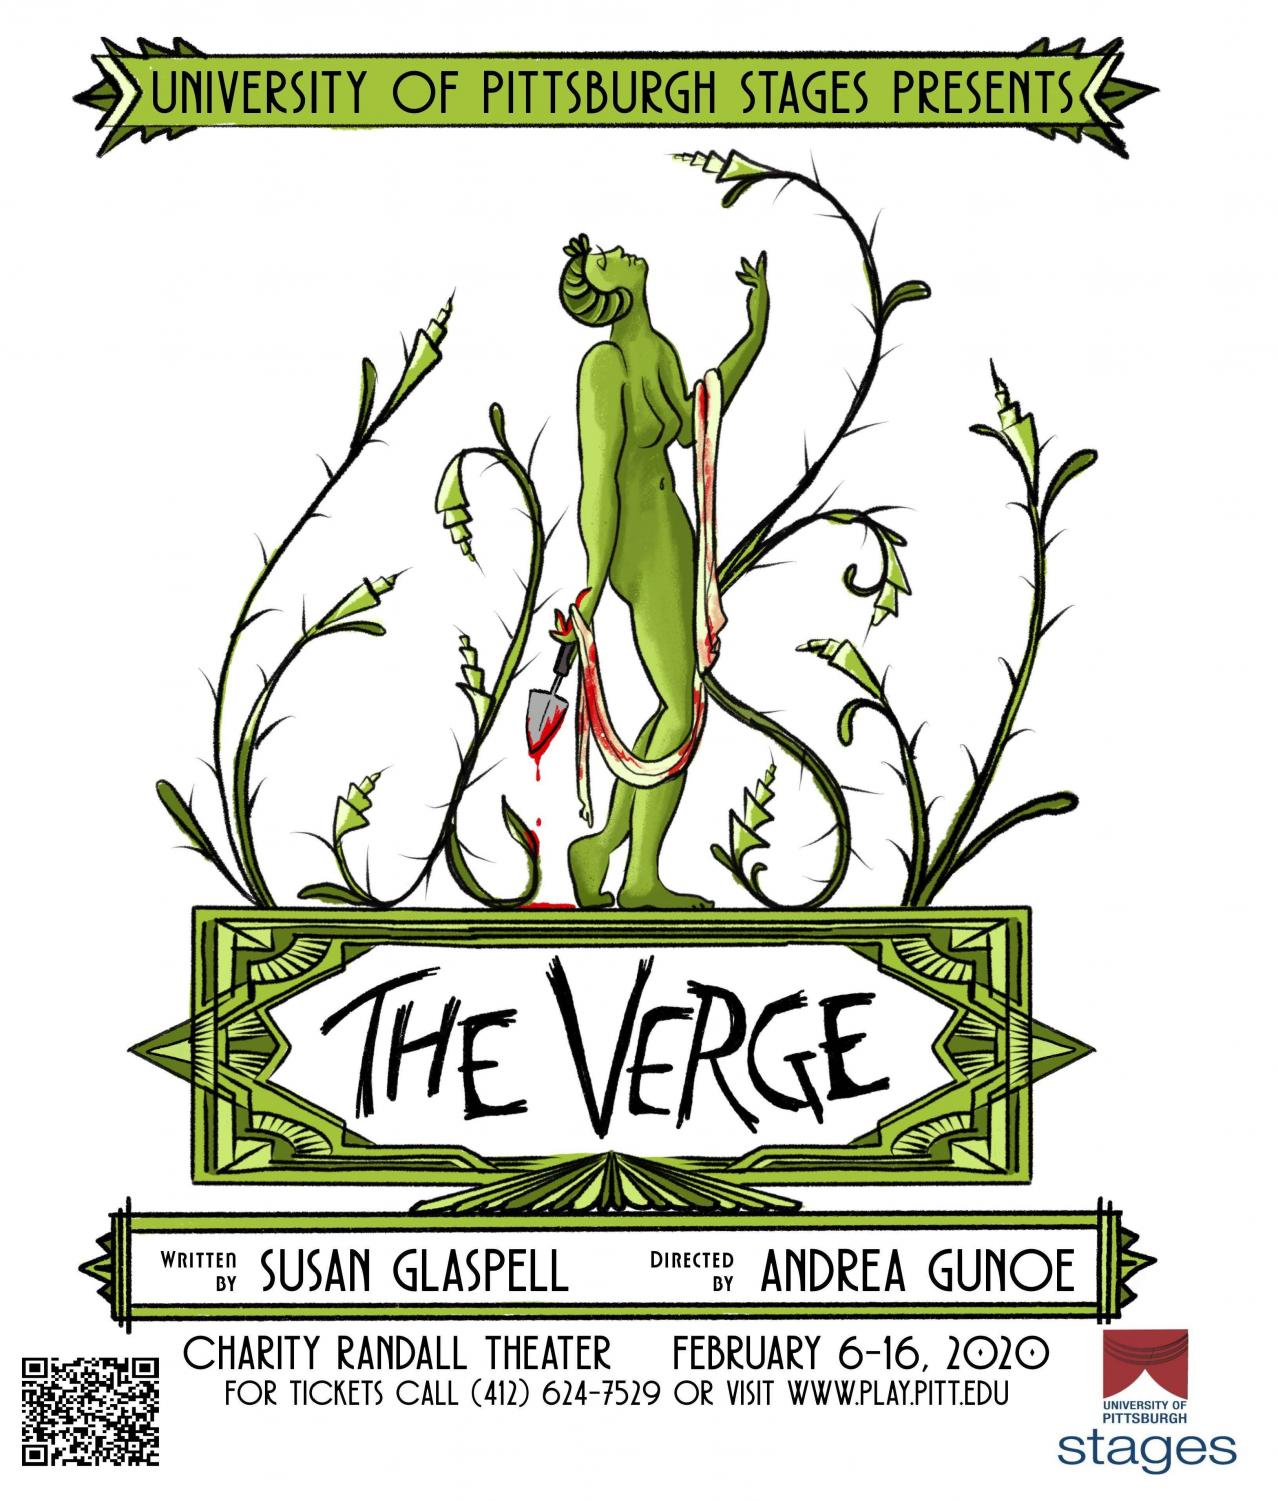 """Directed by Andrea Gunoe, a fifth-year Ph.D. student in theater arts, and written by playwright Susan Glaspell, """"The Verge"""" will run from Feb. 6 to Feb. 16 at the Charity Randall Theater."""